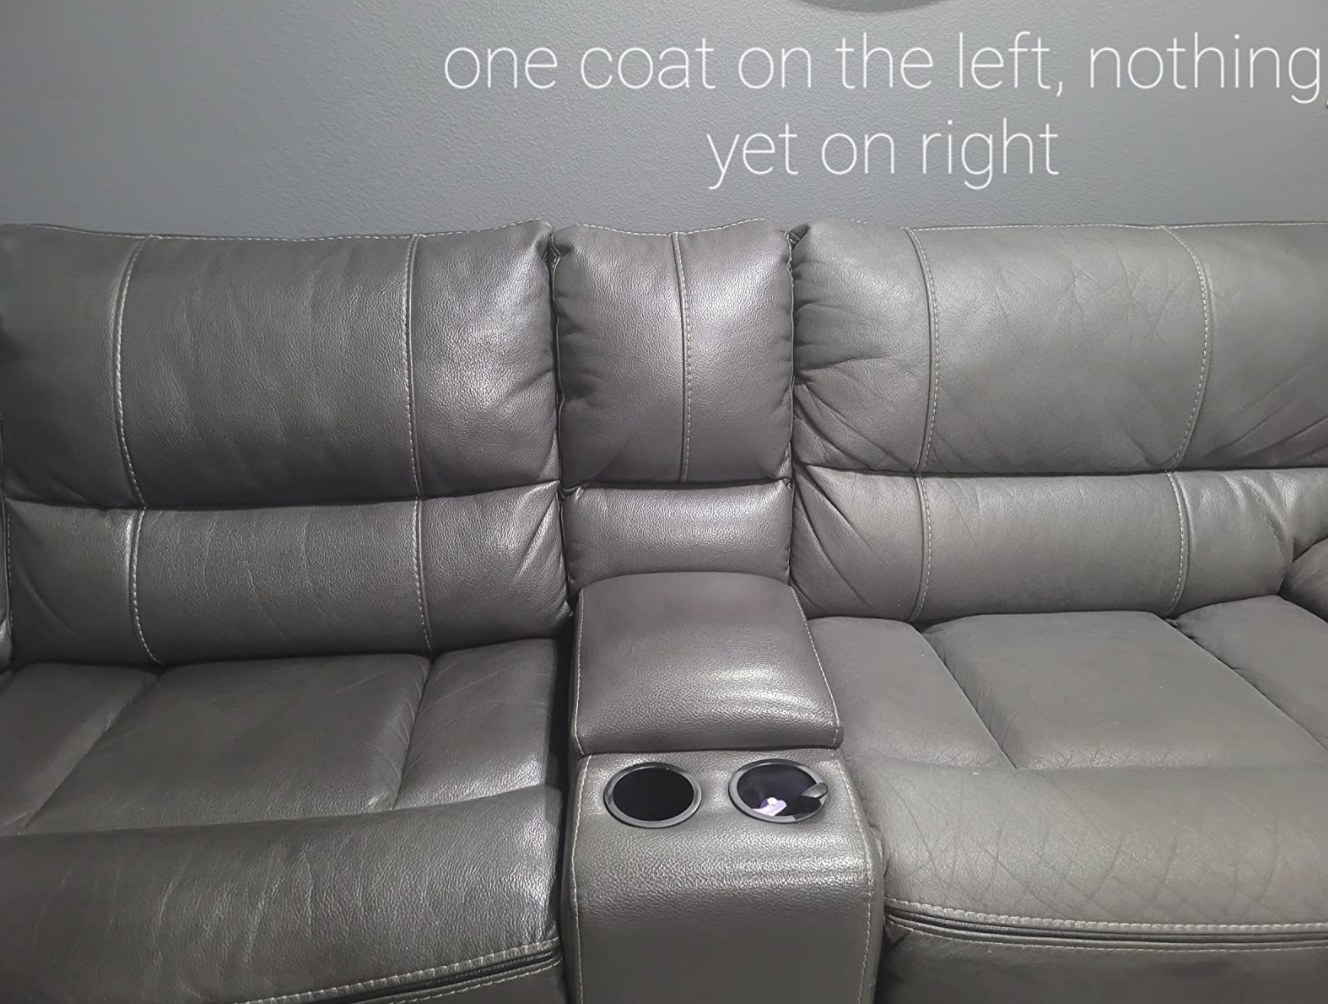 A before and after of a leather couch